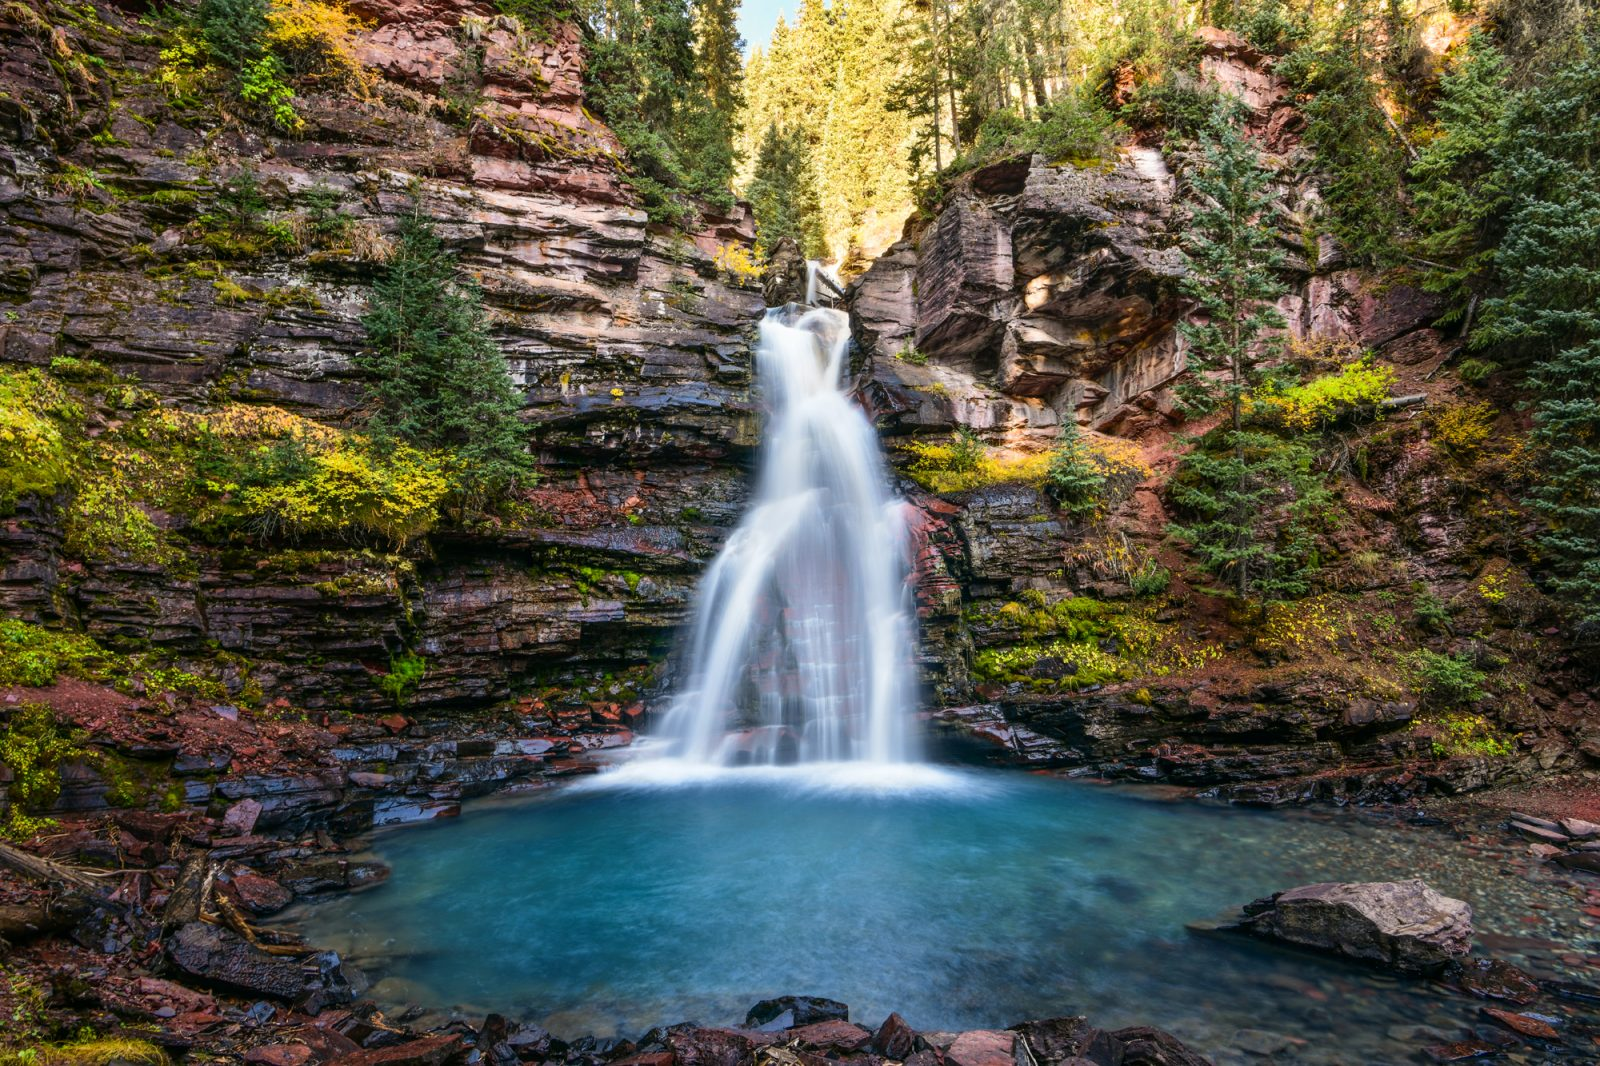 South Mineral Falls